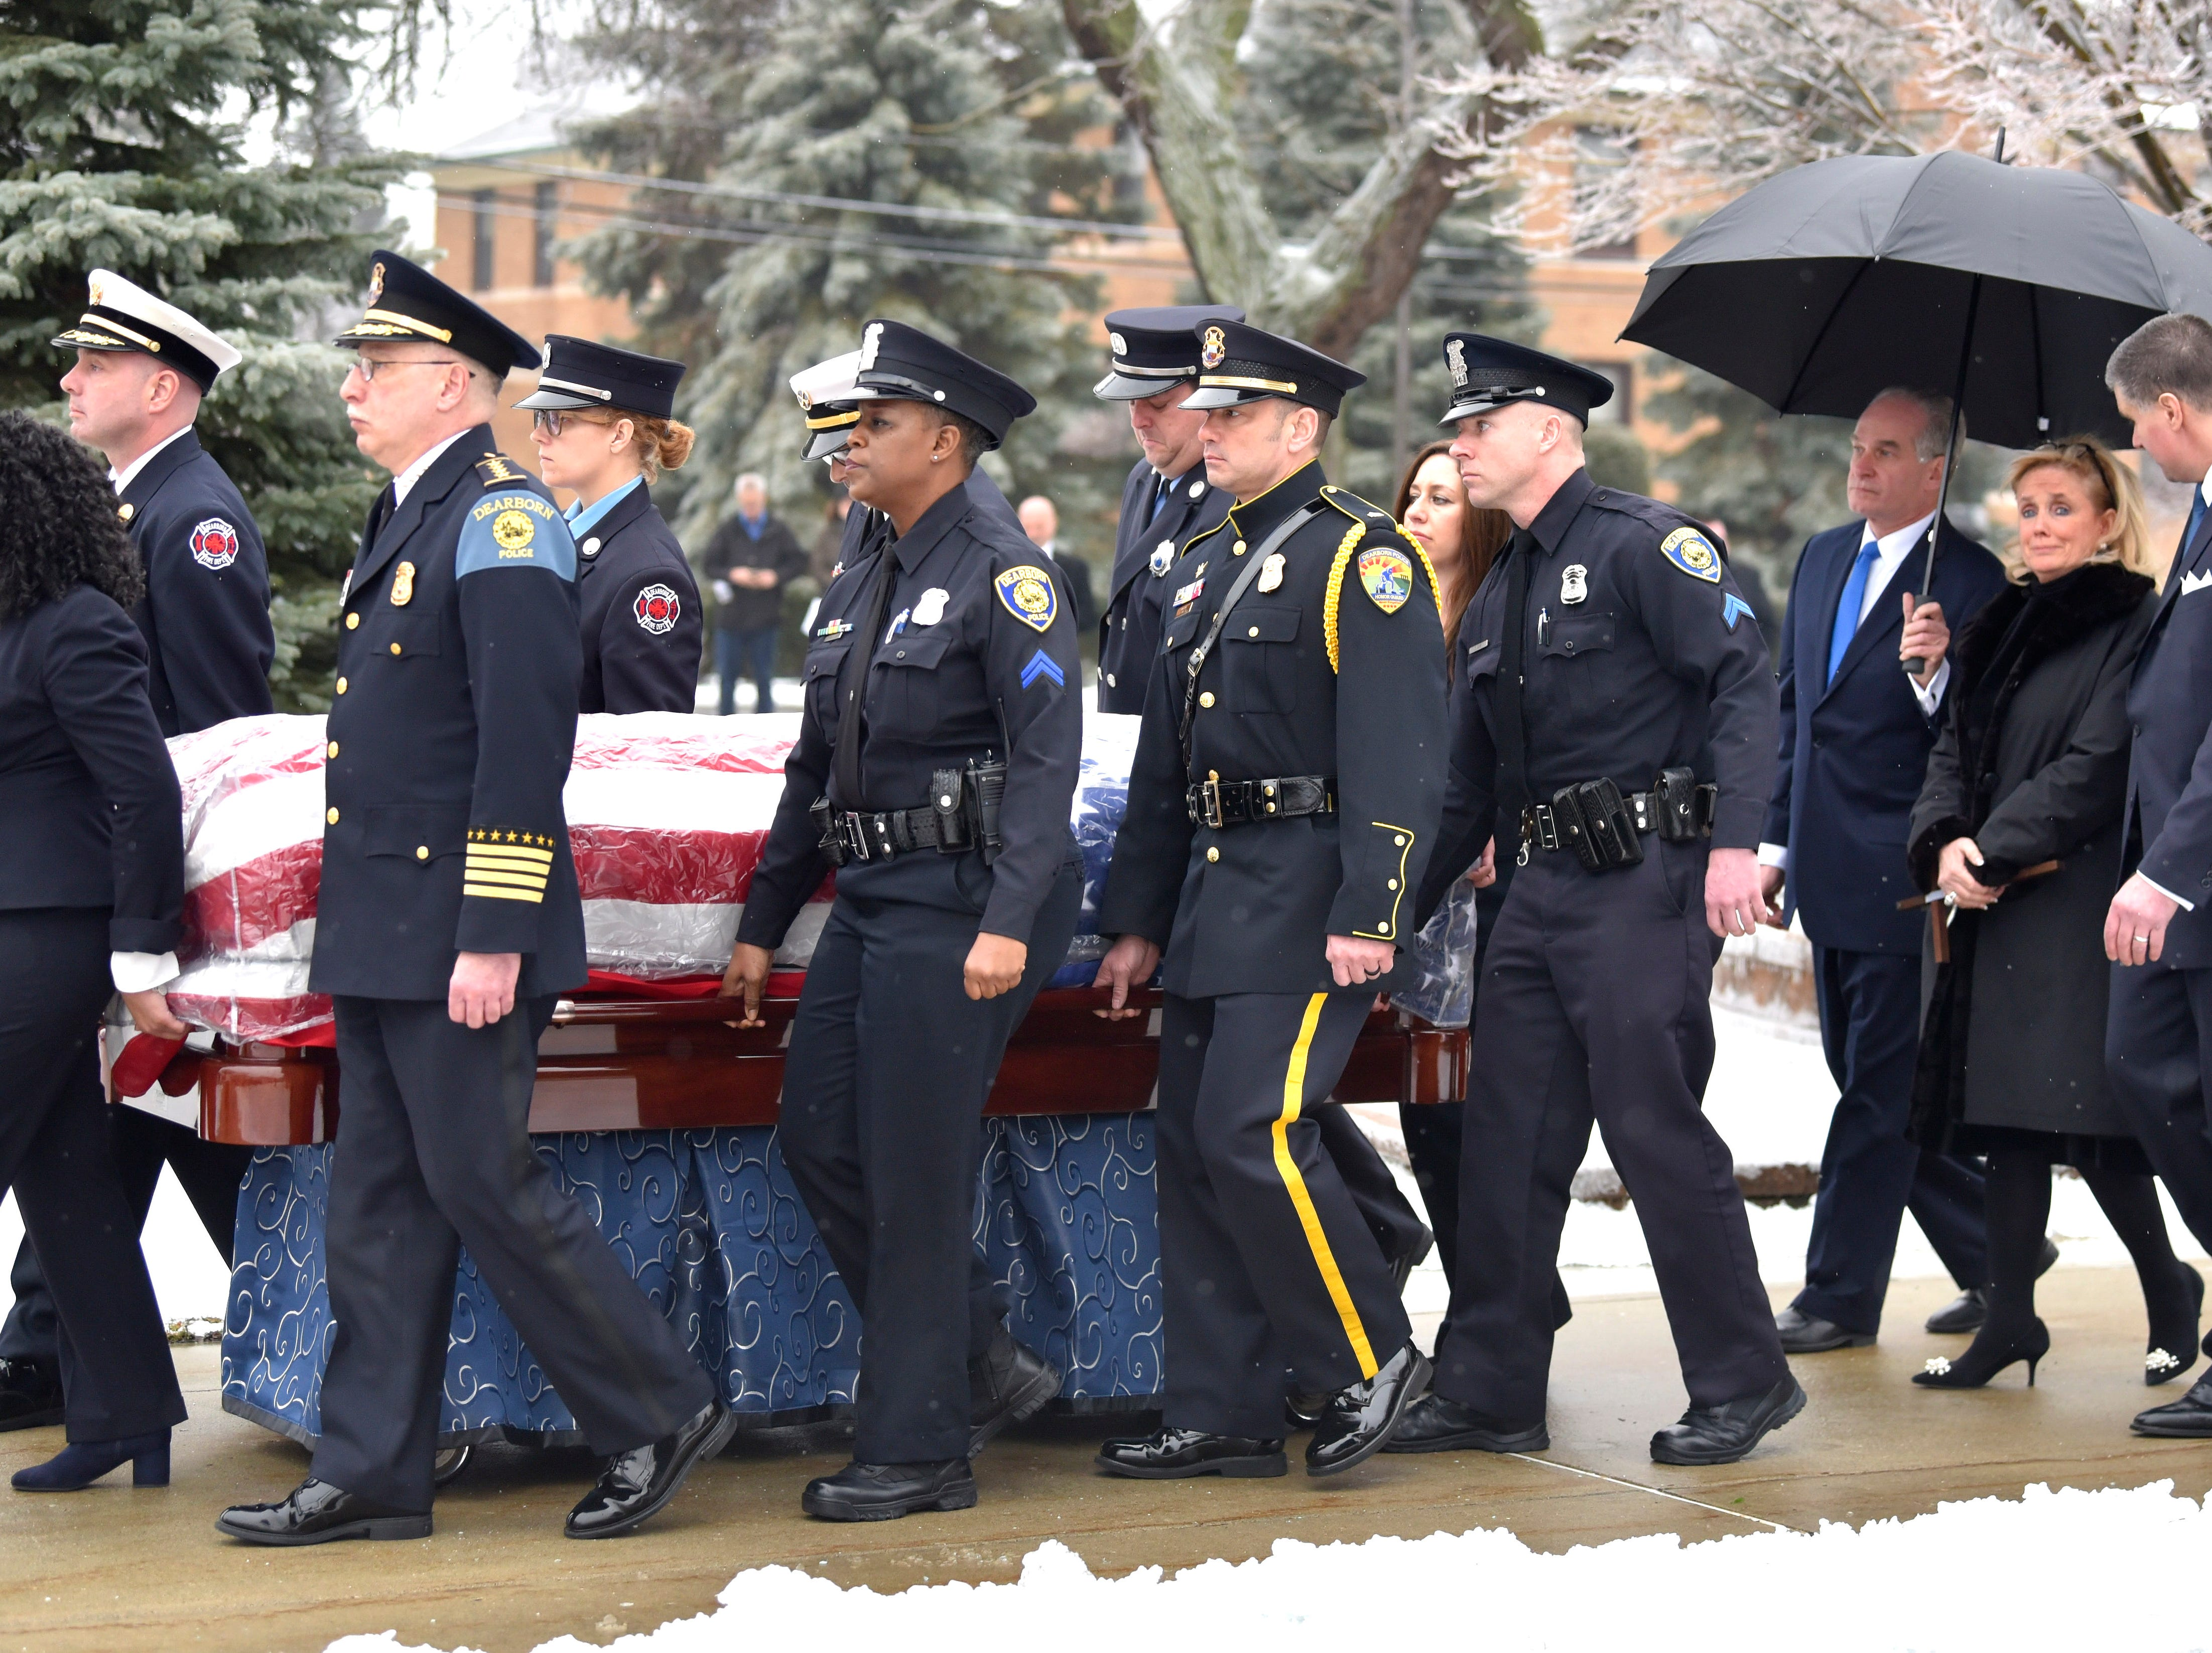 U.S. Congresswoman Debbie Dingell, center-rear, follows the casket of her husband, John Dingell Jr., as Dearborn police officers and fire fighters carry it to the hearse.